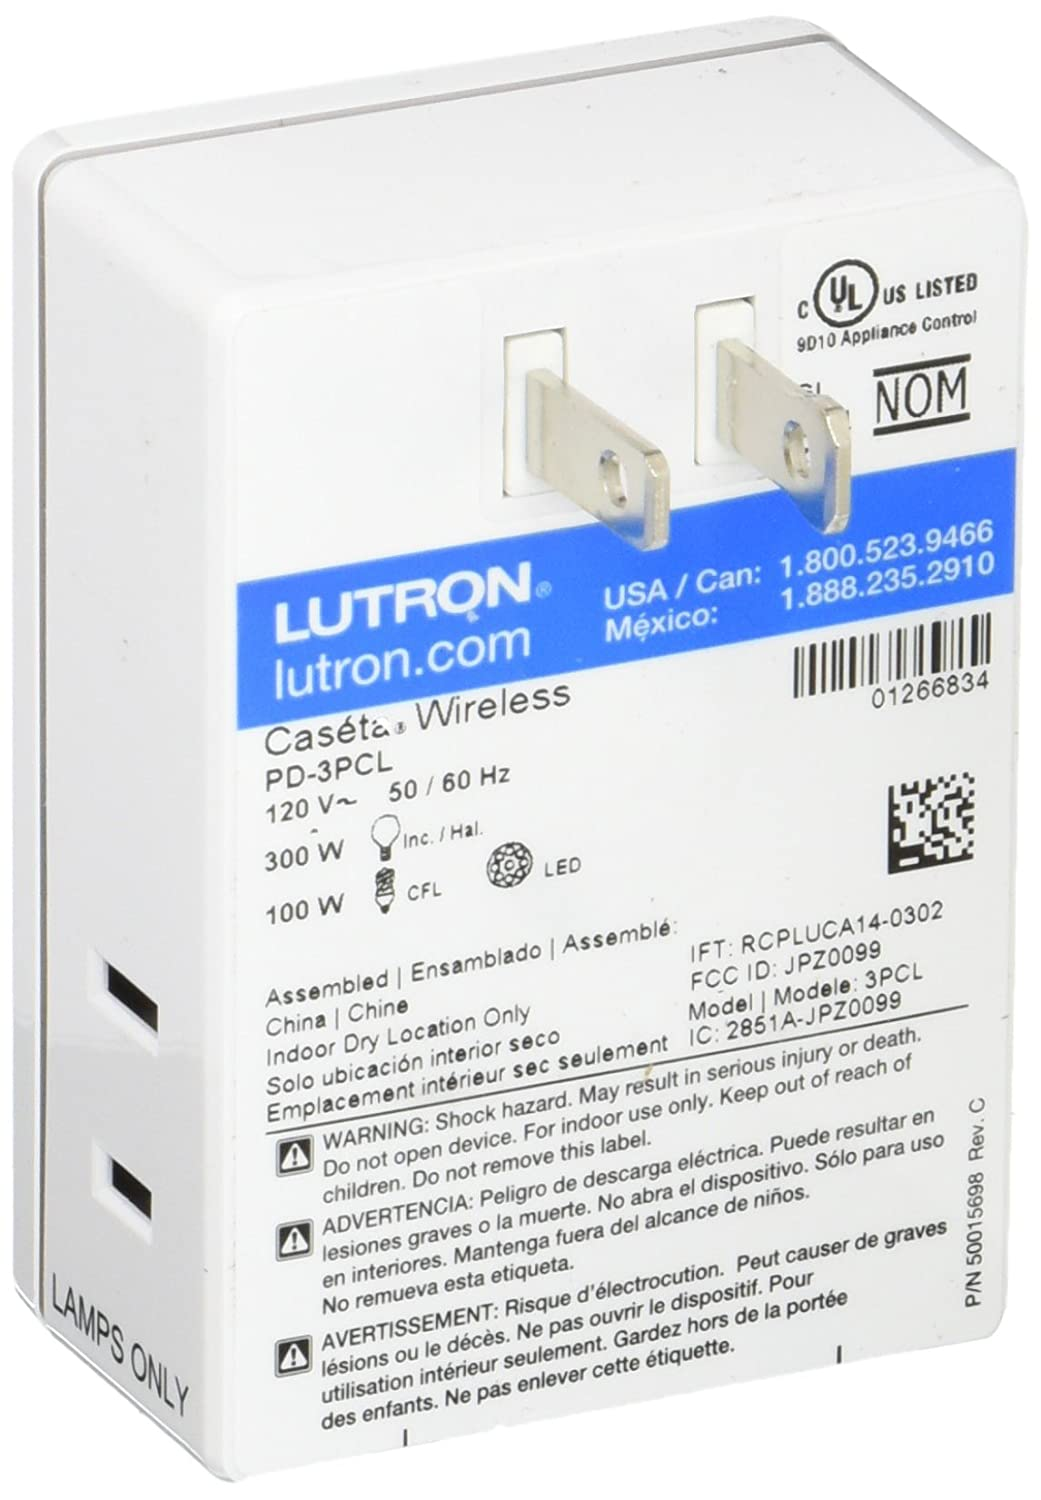 Lutron Caseta Wireless Smart Lighting Lamp Dimmer Pd 3pcl Wh Works How To Build 120 Vac With Alexa Apple Homekit And The Google Assistant